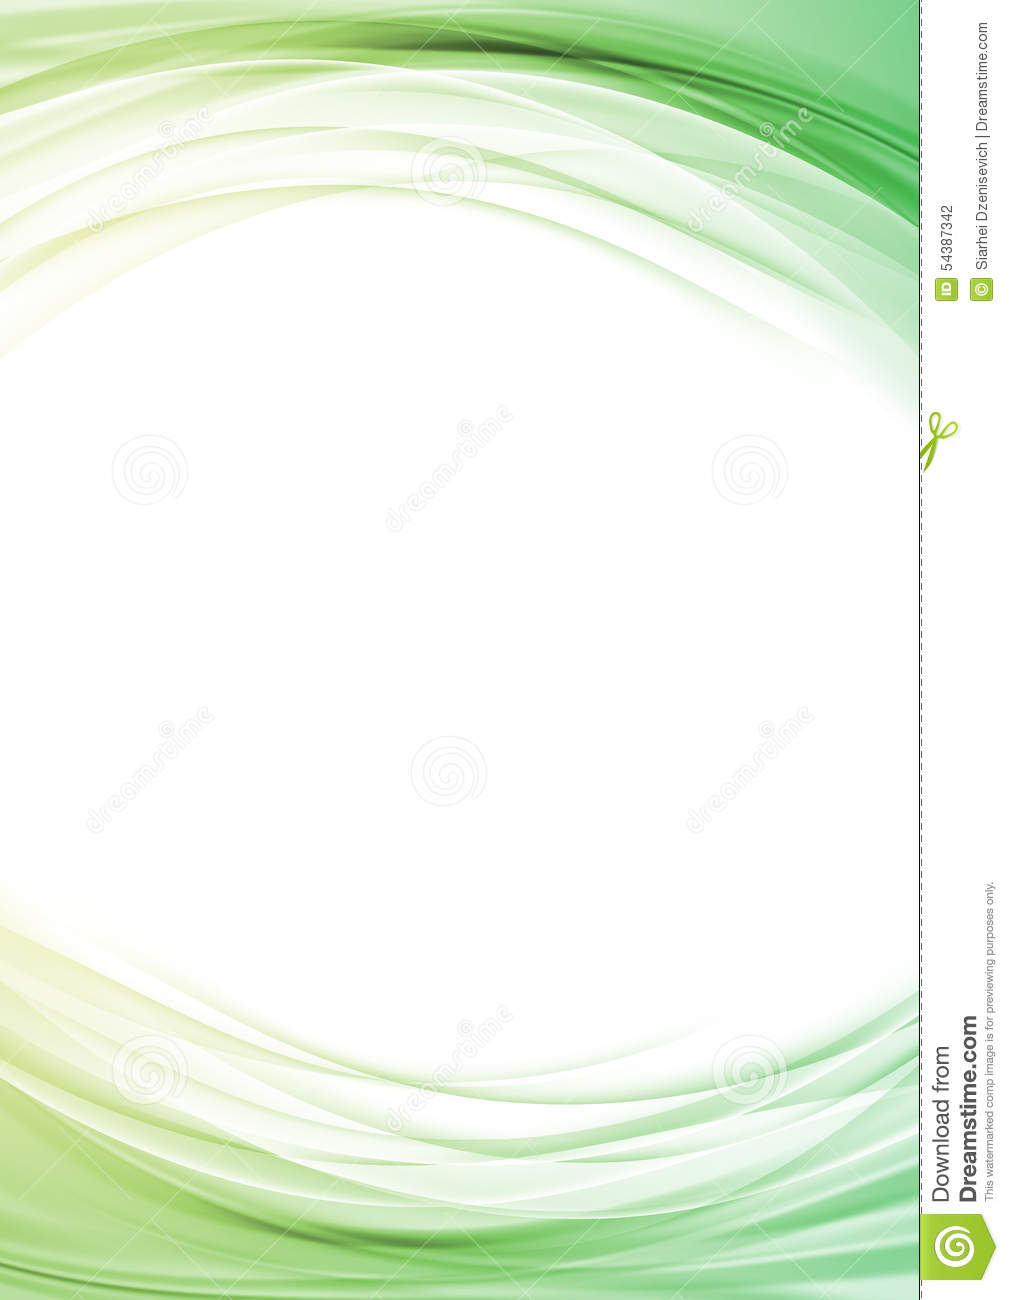 Bright Soft Line Border Certificate Layout Stock Vector